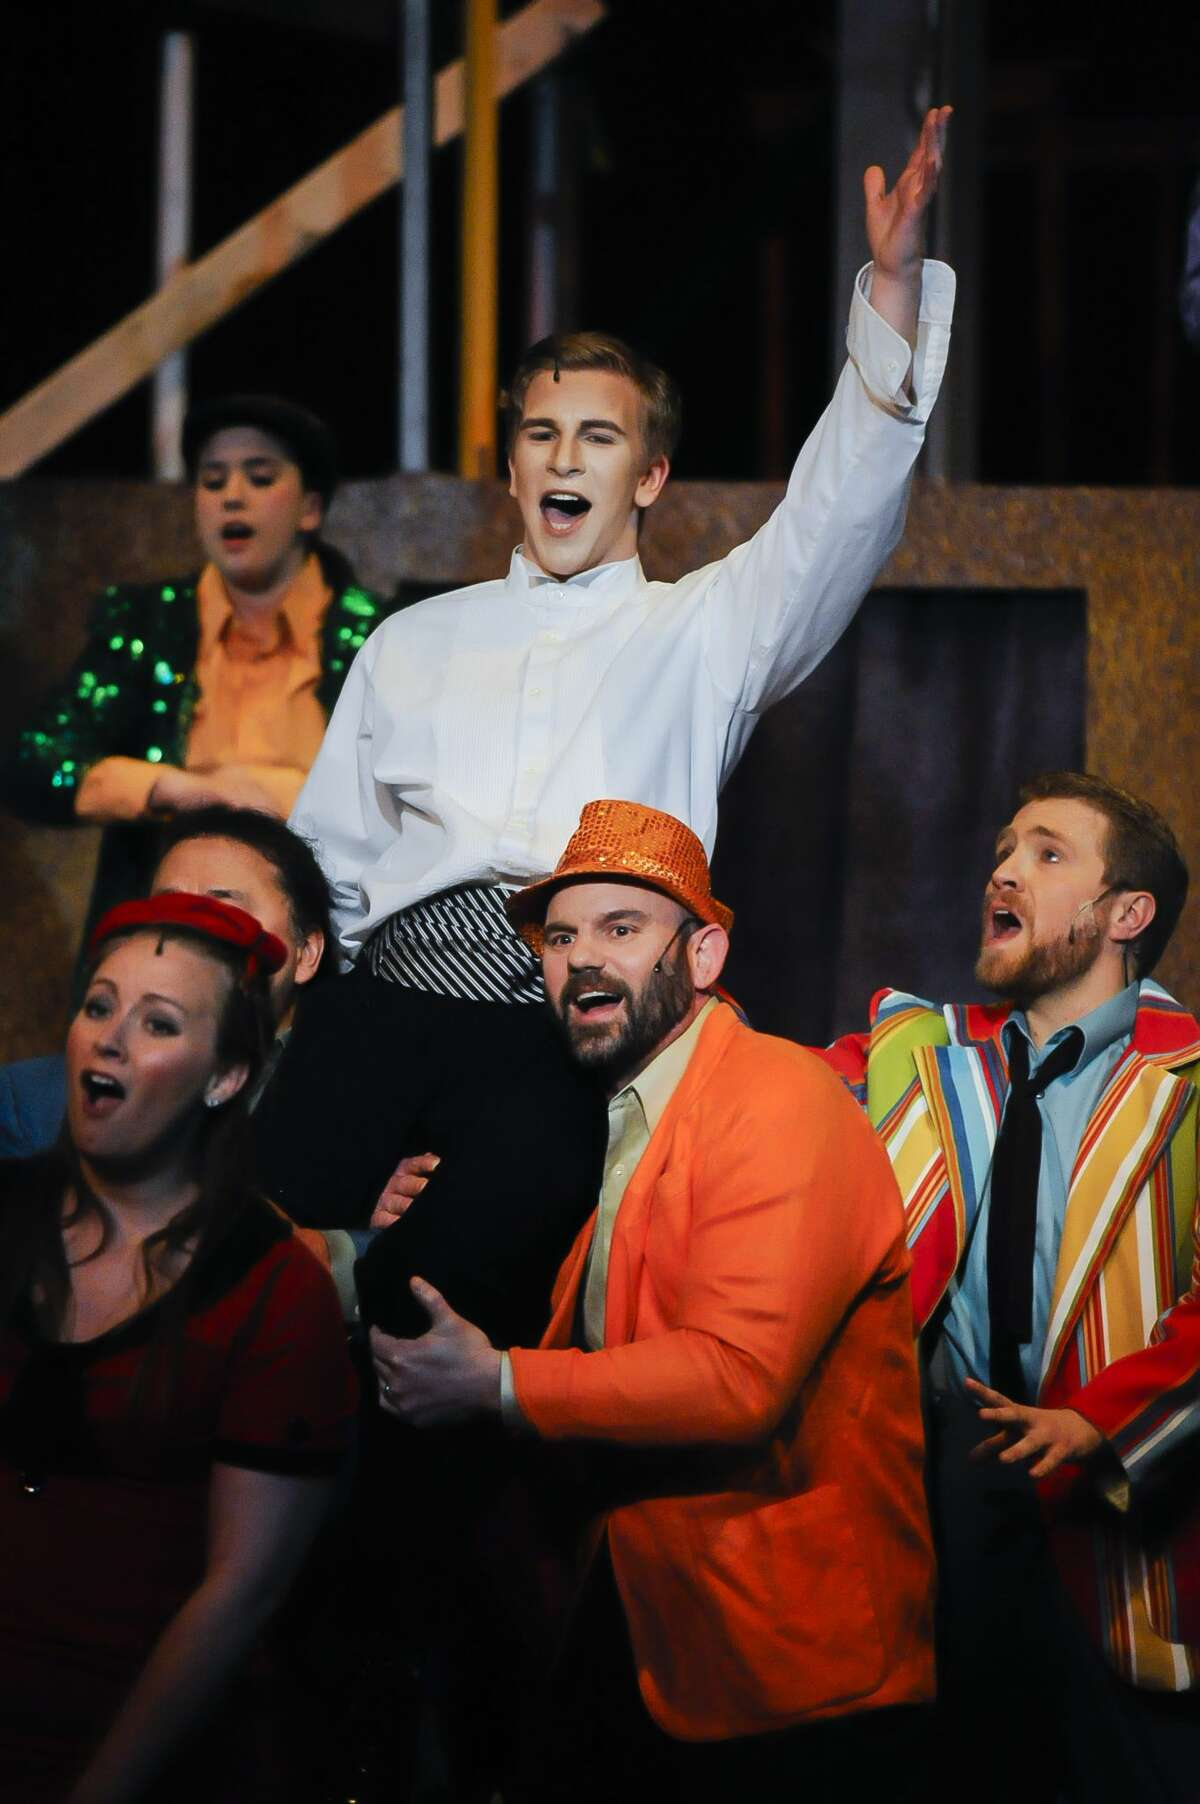 Nick Alfano, in the role of Joseph, center, performs a musical number alongside fellow cast members during a dress rehearsal for Center Stage Theatre's production of